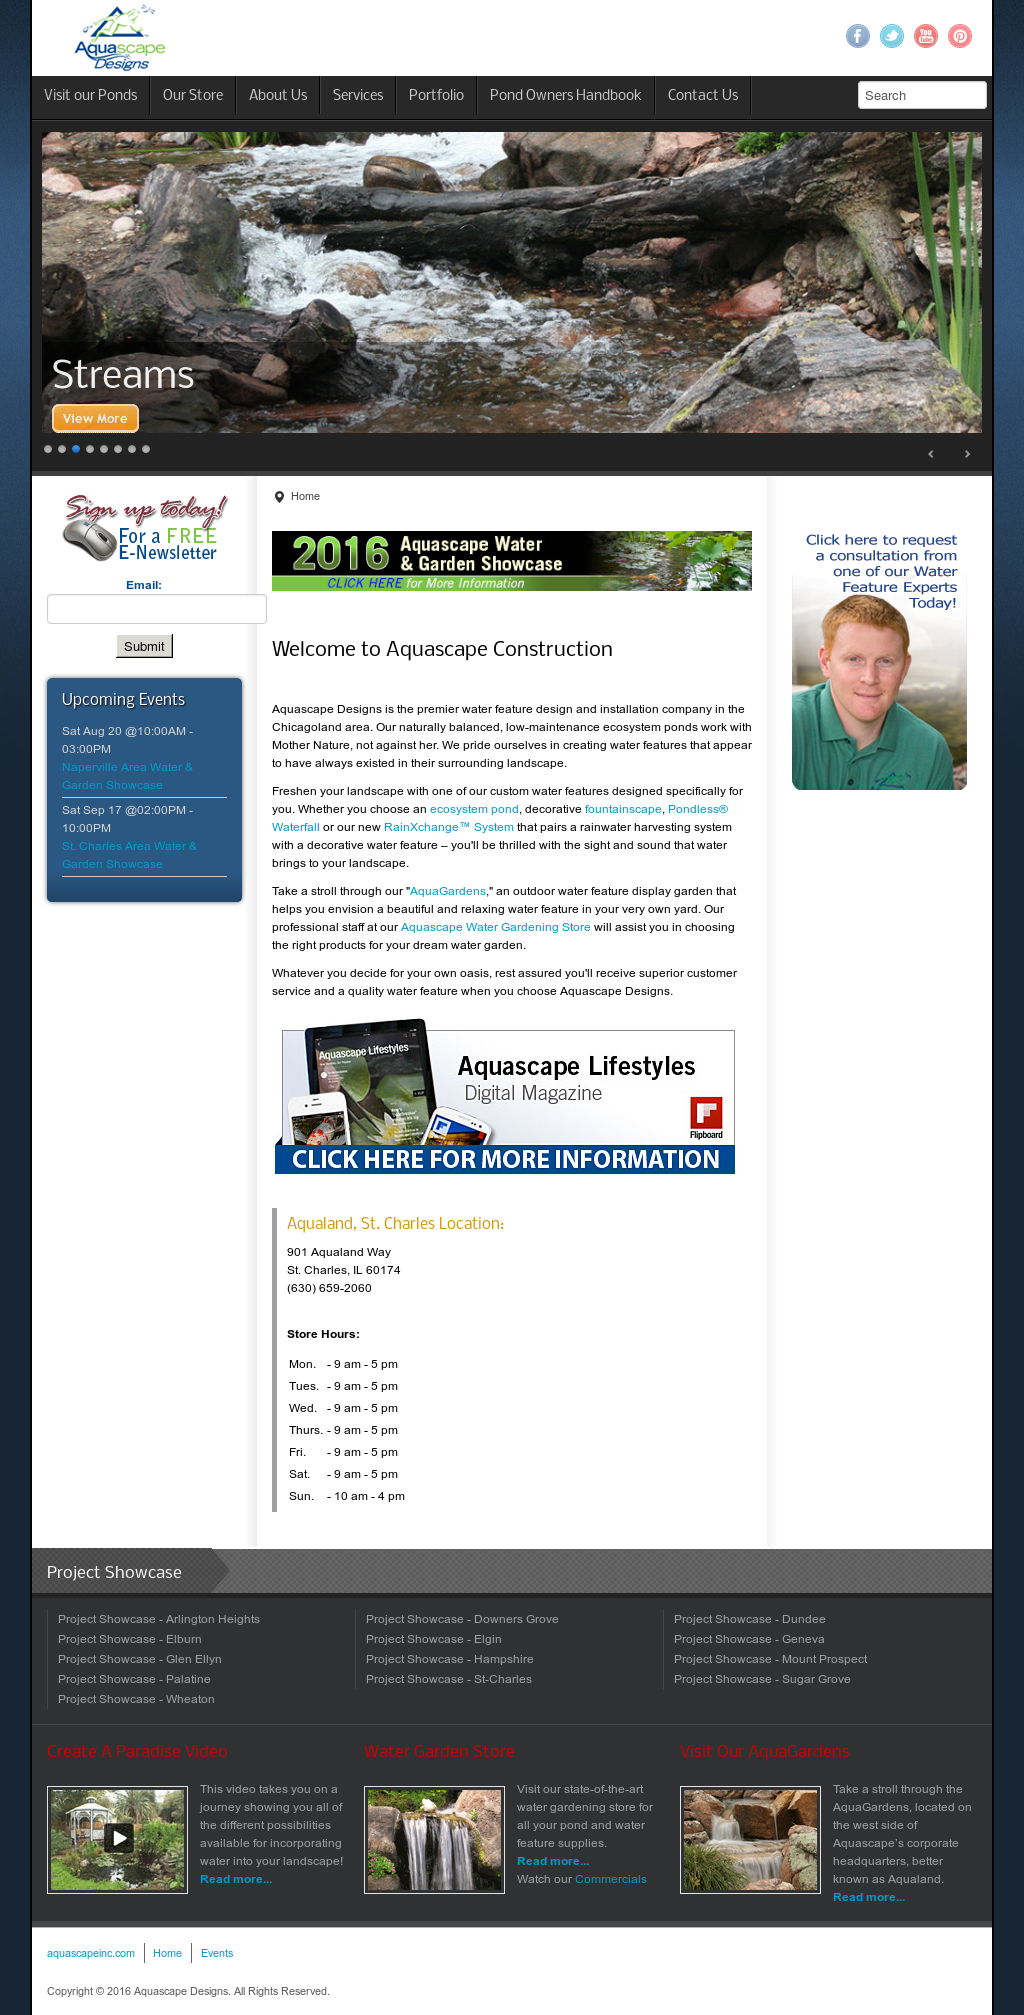 Aquascape Designs S Competitors Revenue Number Of Employees Funding Acquisitions News Owler Company Profile